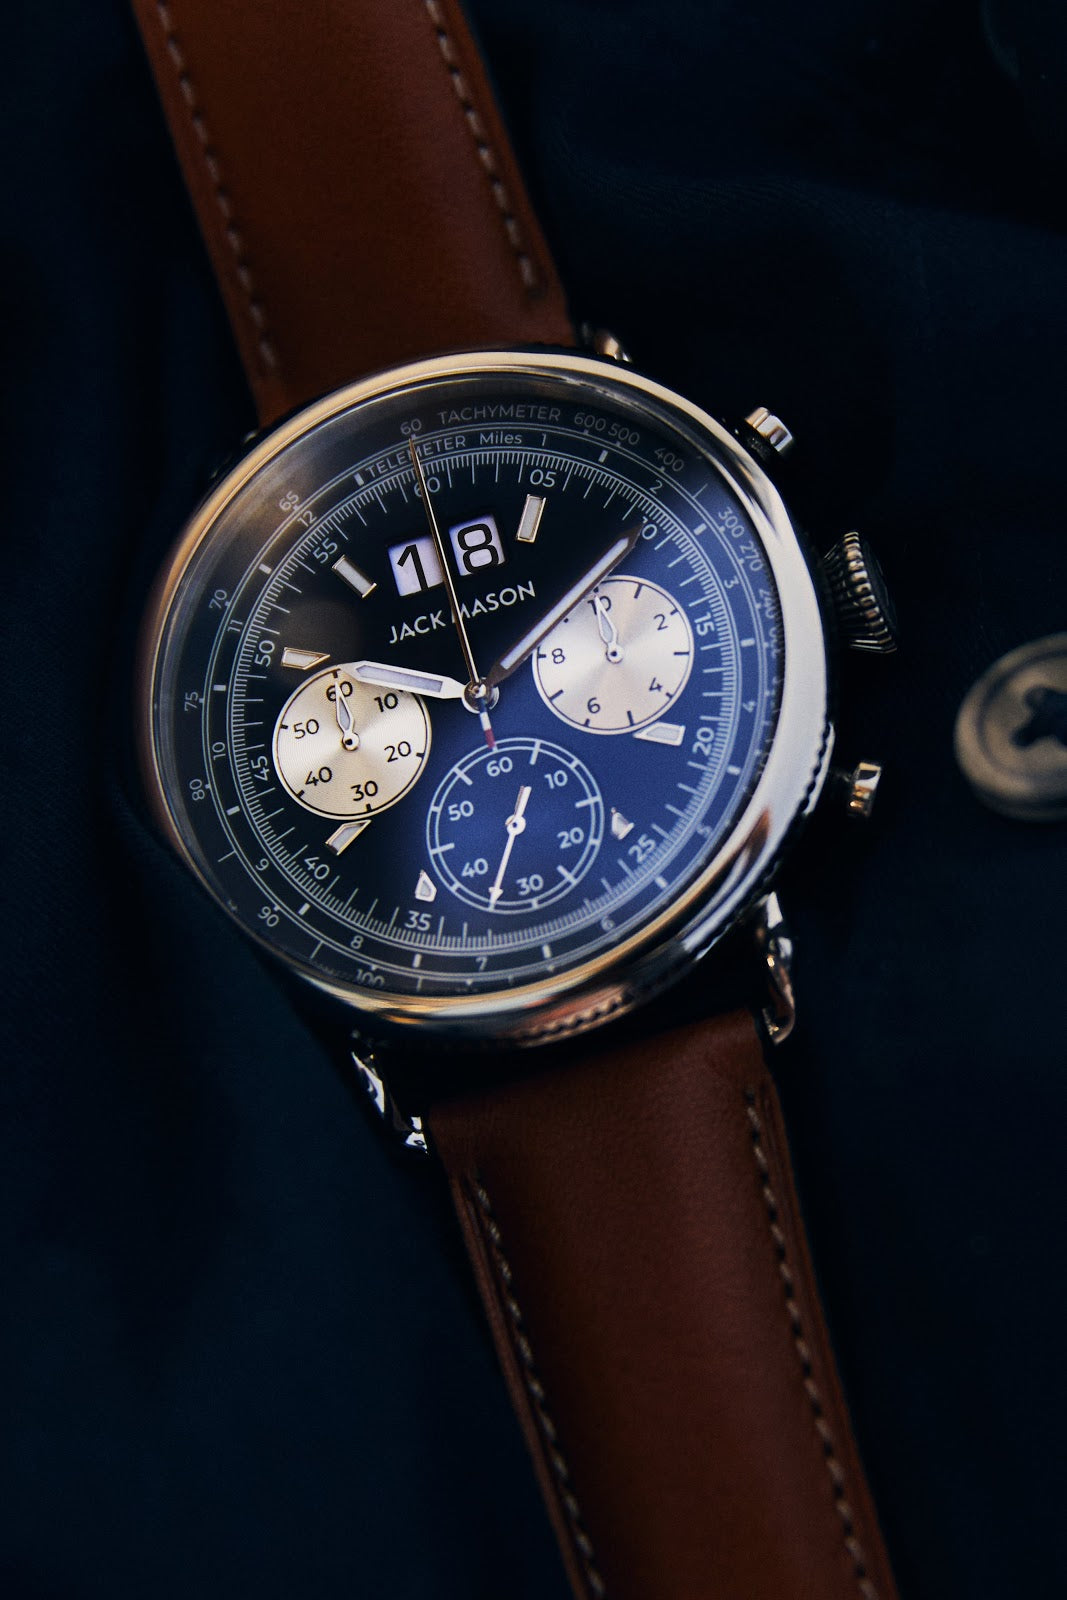 What's an Aviator Watch, and How Does It Work?